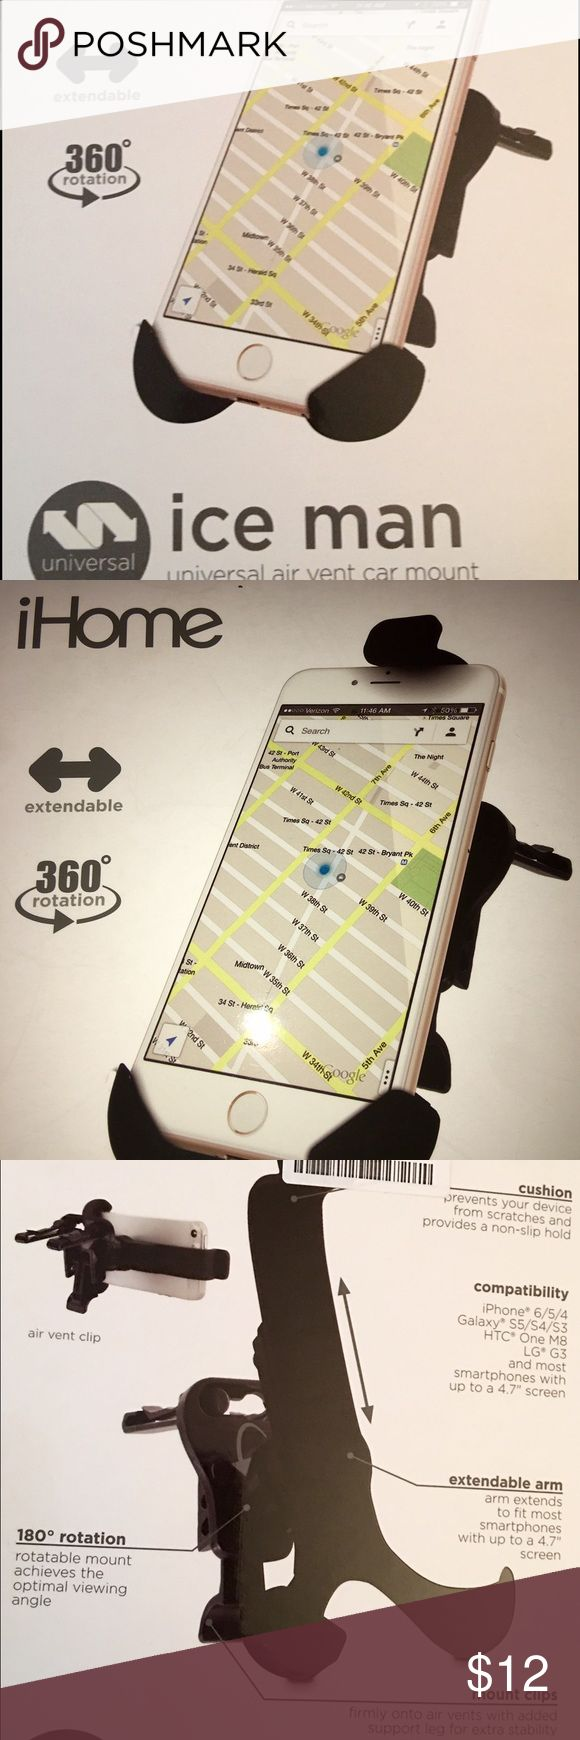 iHome ice man Car Cell Phone Holder Easy to install car vent cellphone holder. Like New with box and manual. Fits All models. ihome Accessories Phone Cases